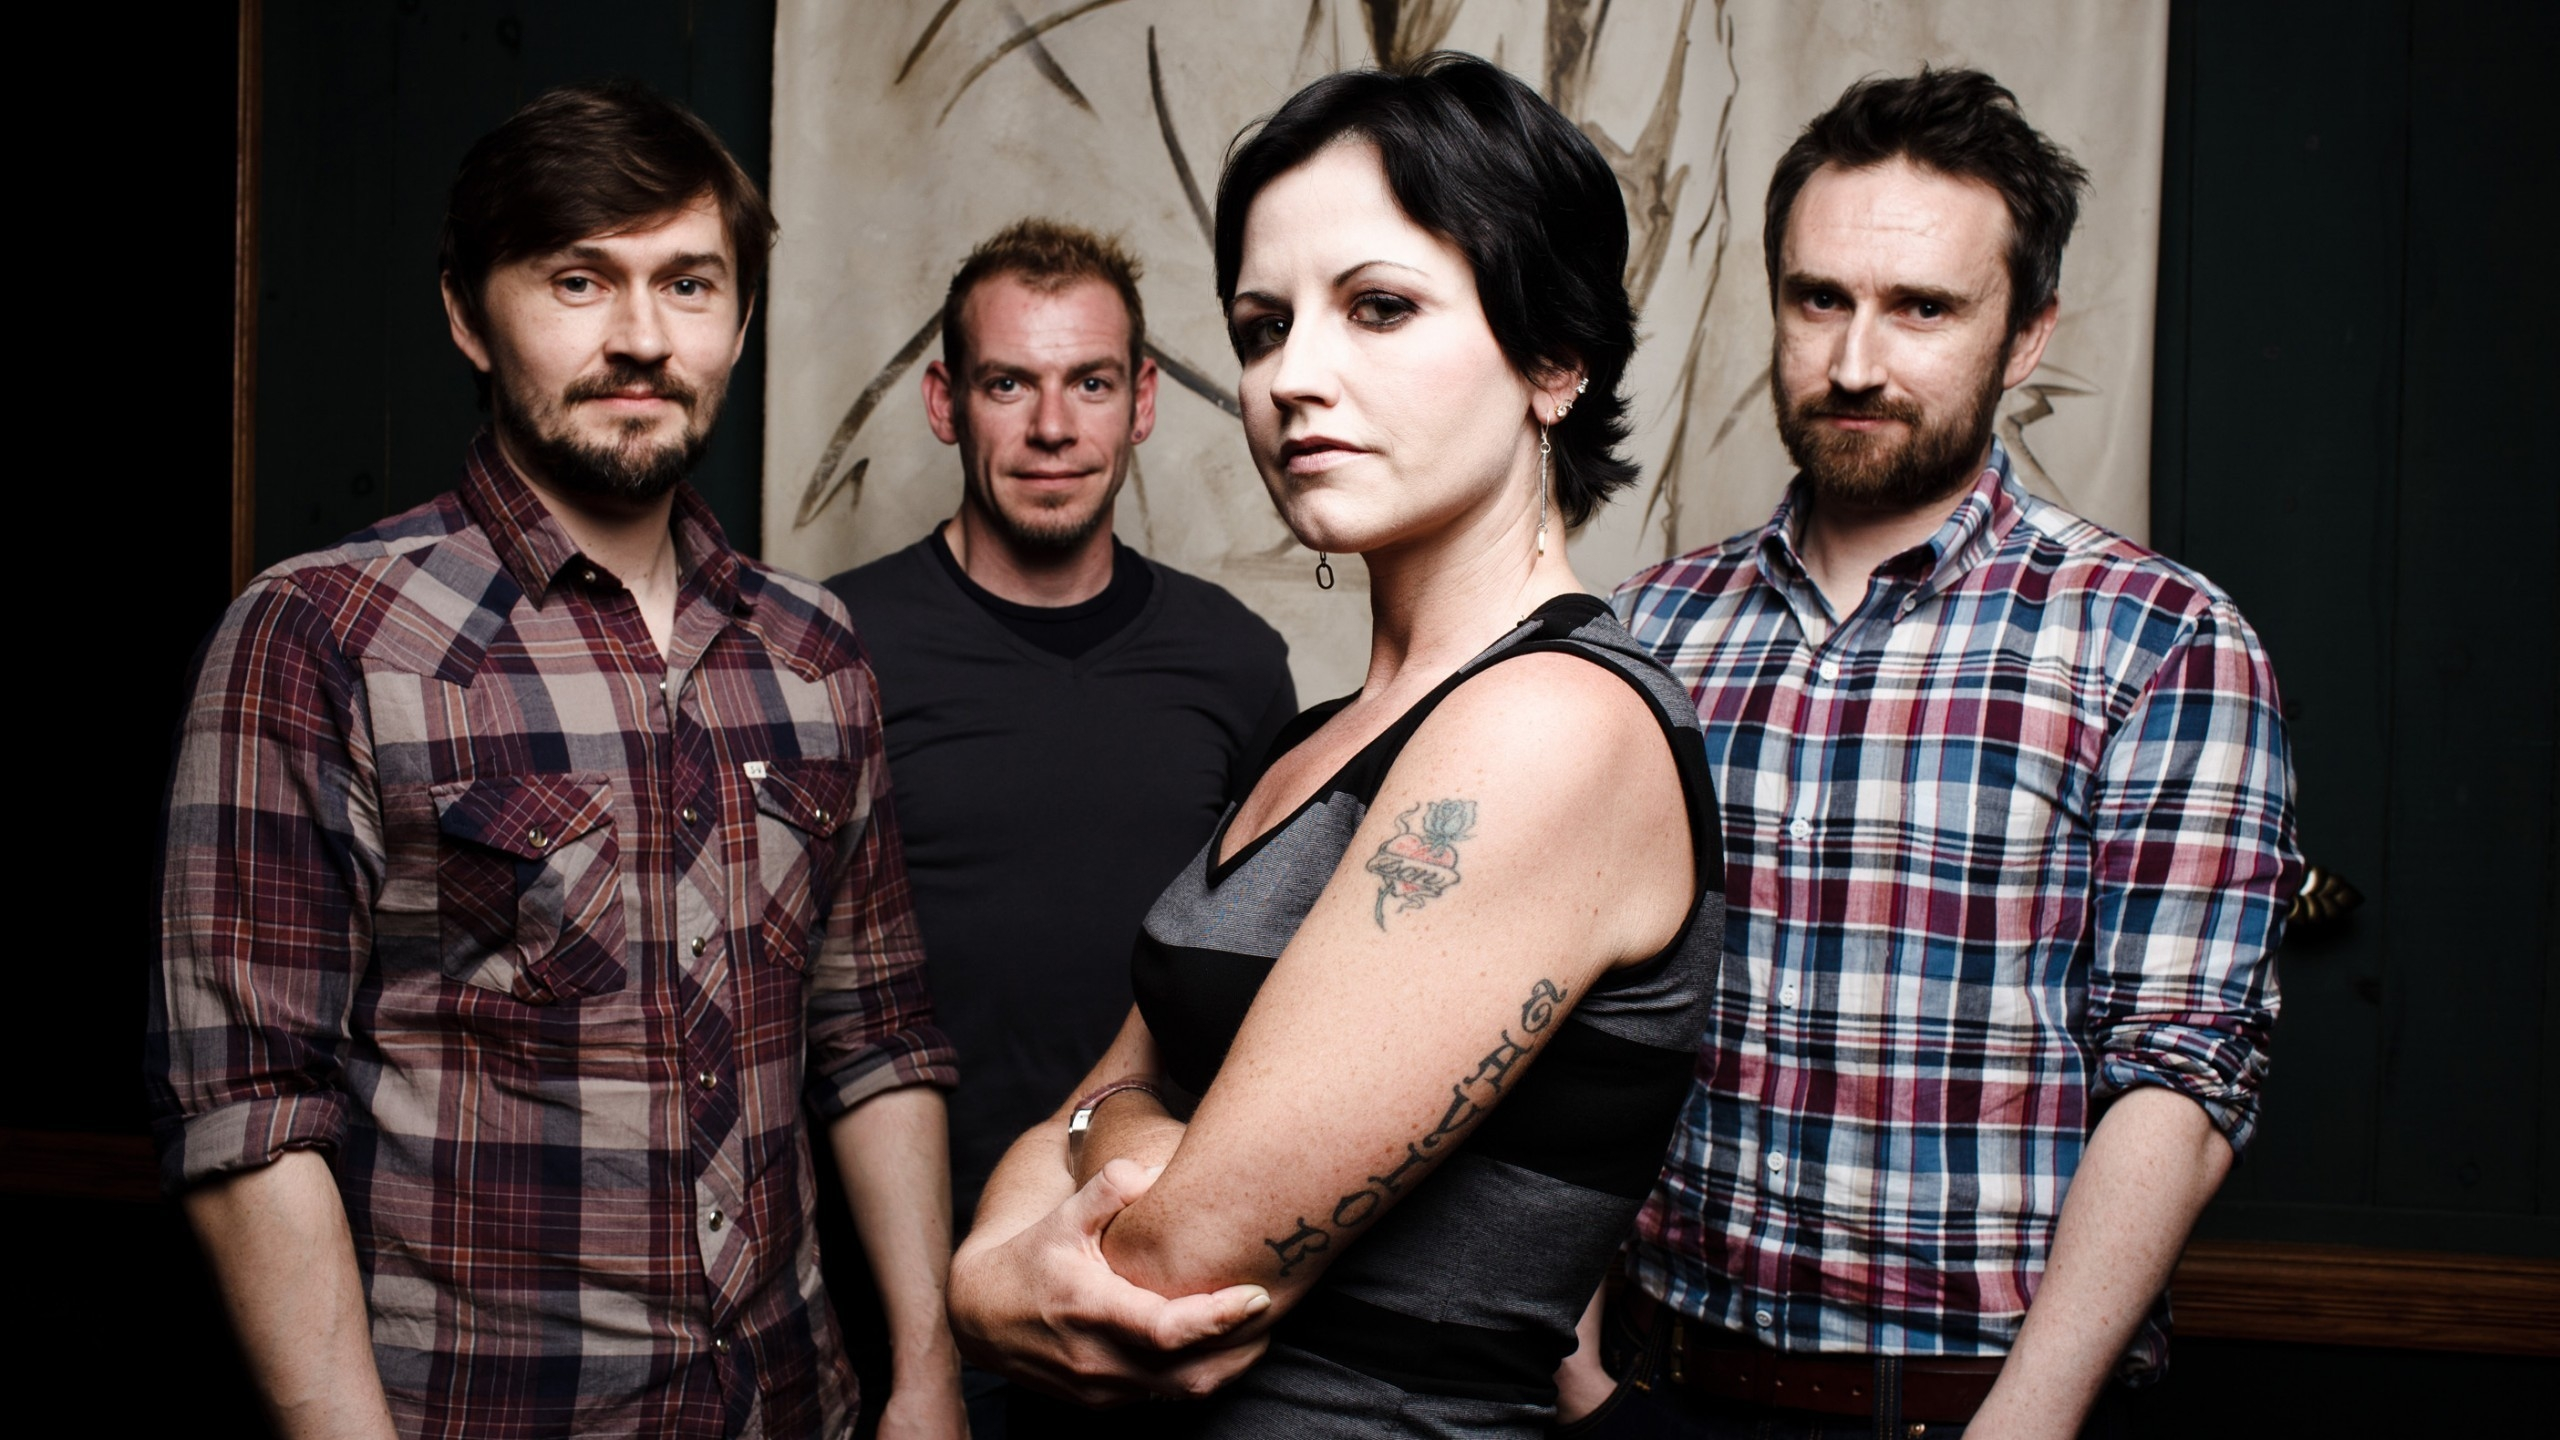 The Cranberries for 2560x1440 HDTV resolution